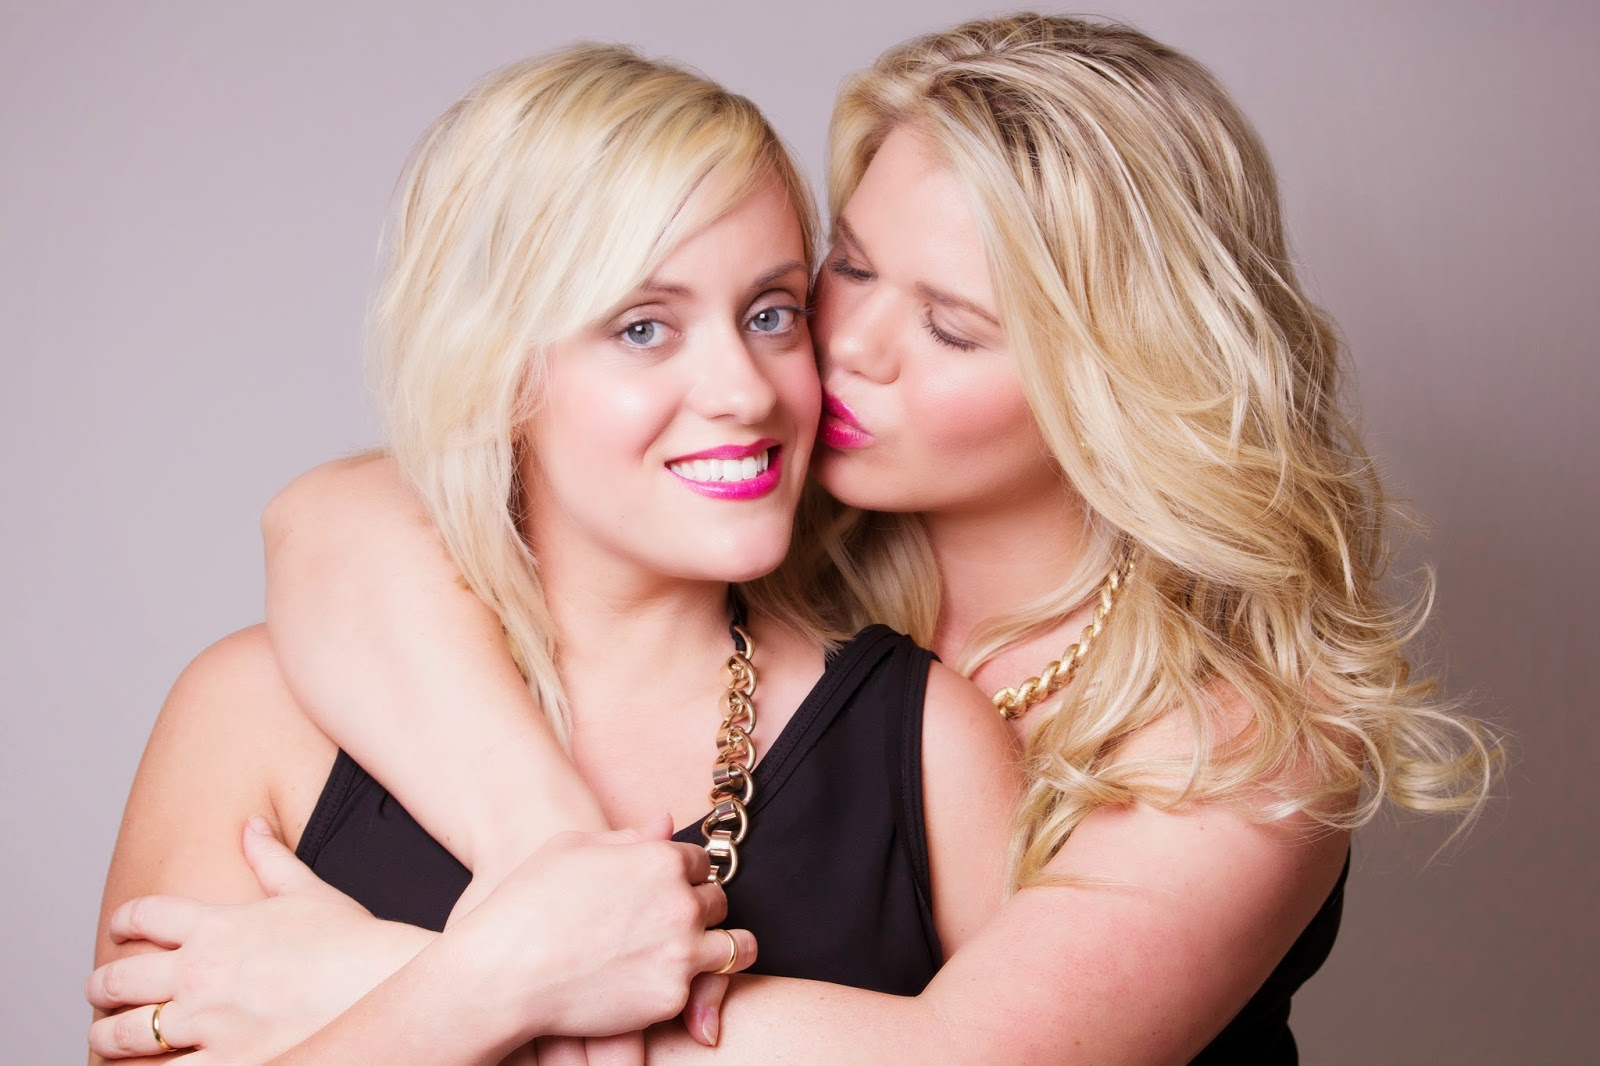 braman lesbian personals Funny dating contracts introducing the dating contract before you get sucked into a sticky relationshipview funny cute relationship contract dating contracts the dating contract tamil lesbian marriage proposal and more funny posts onherein my ill fortune.